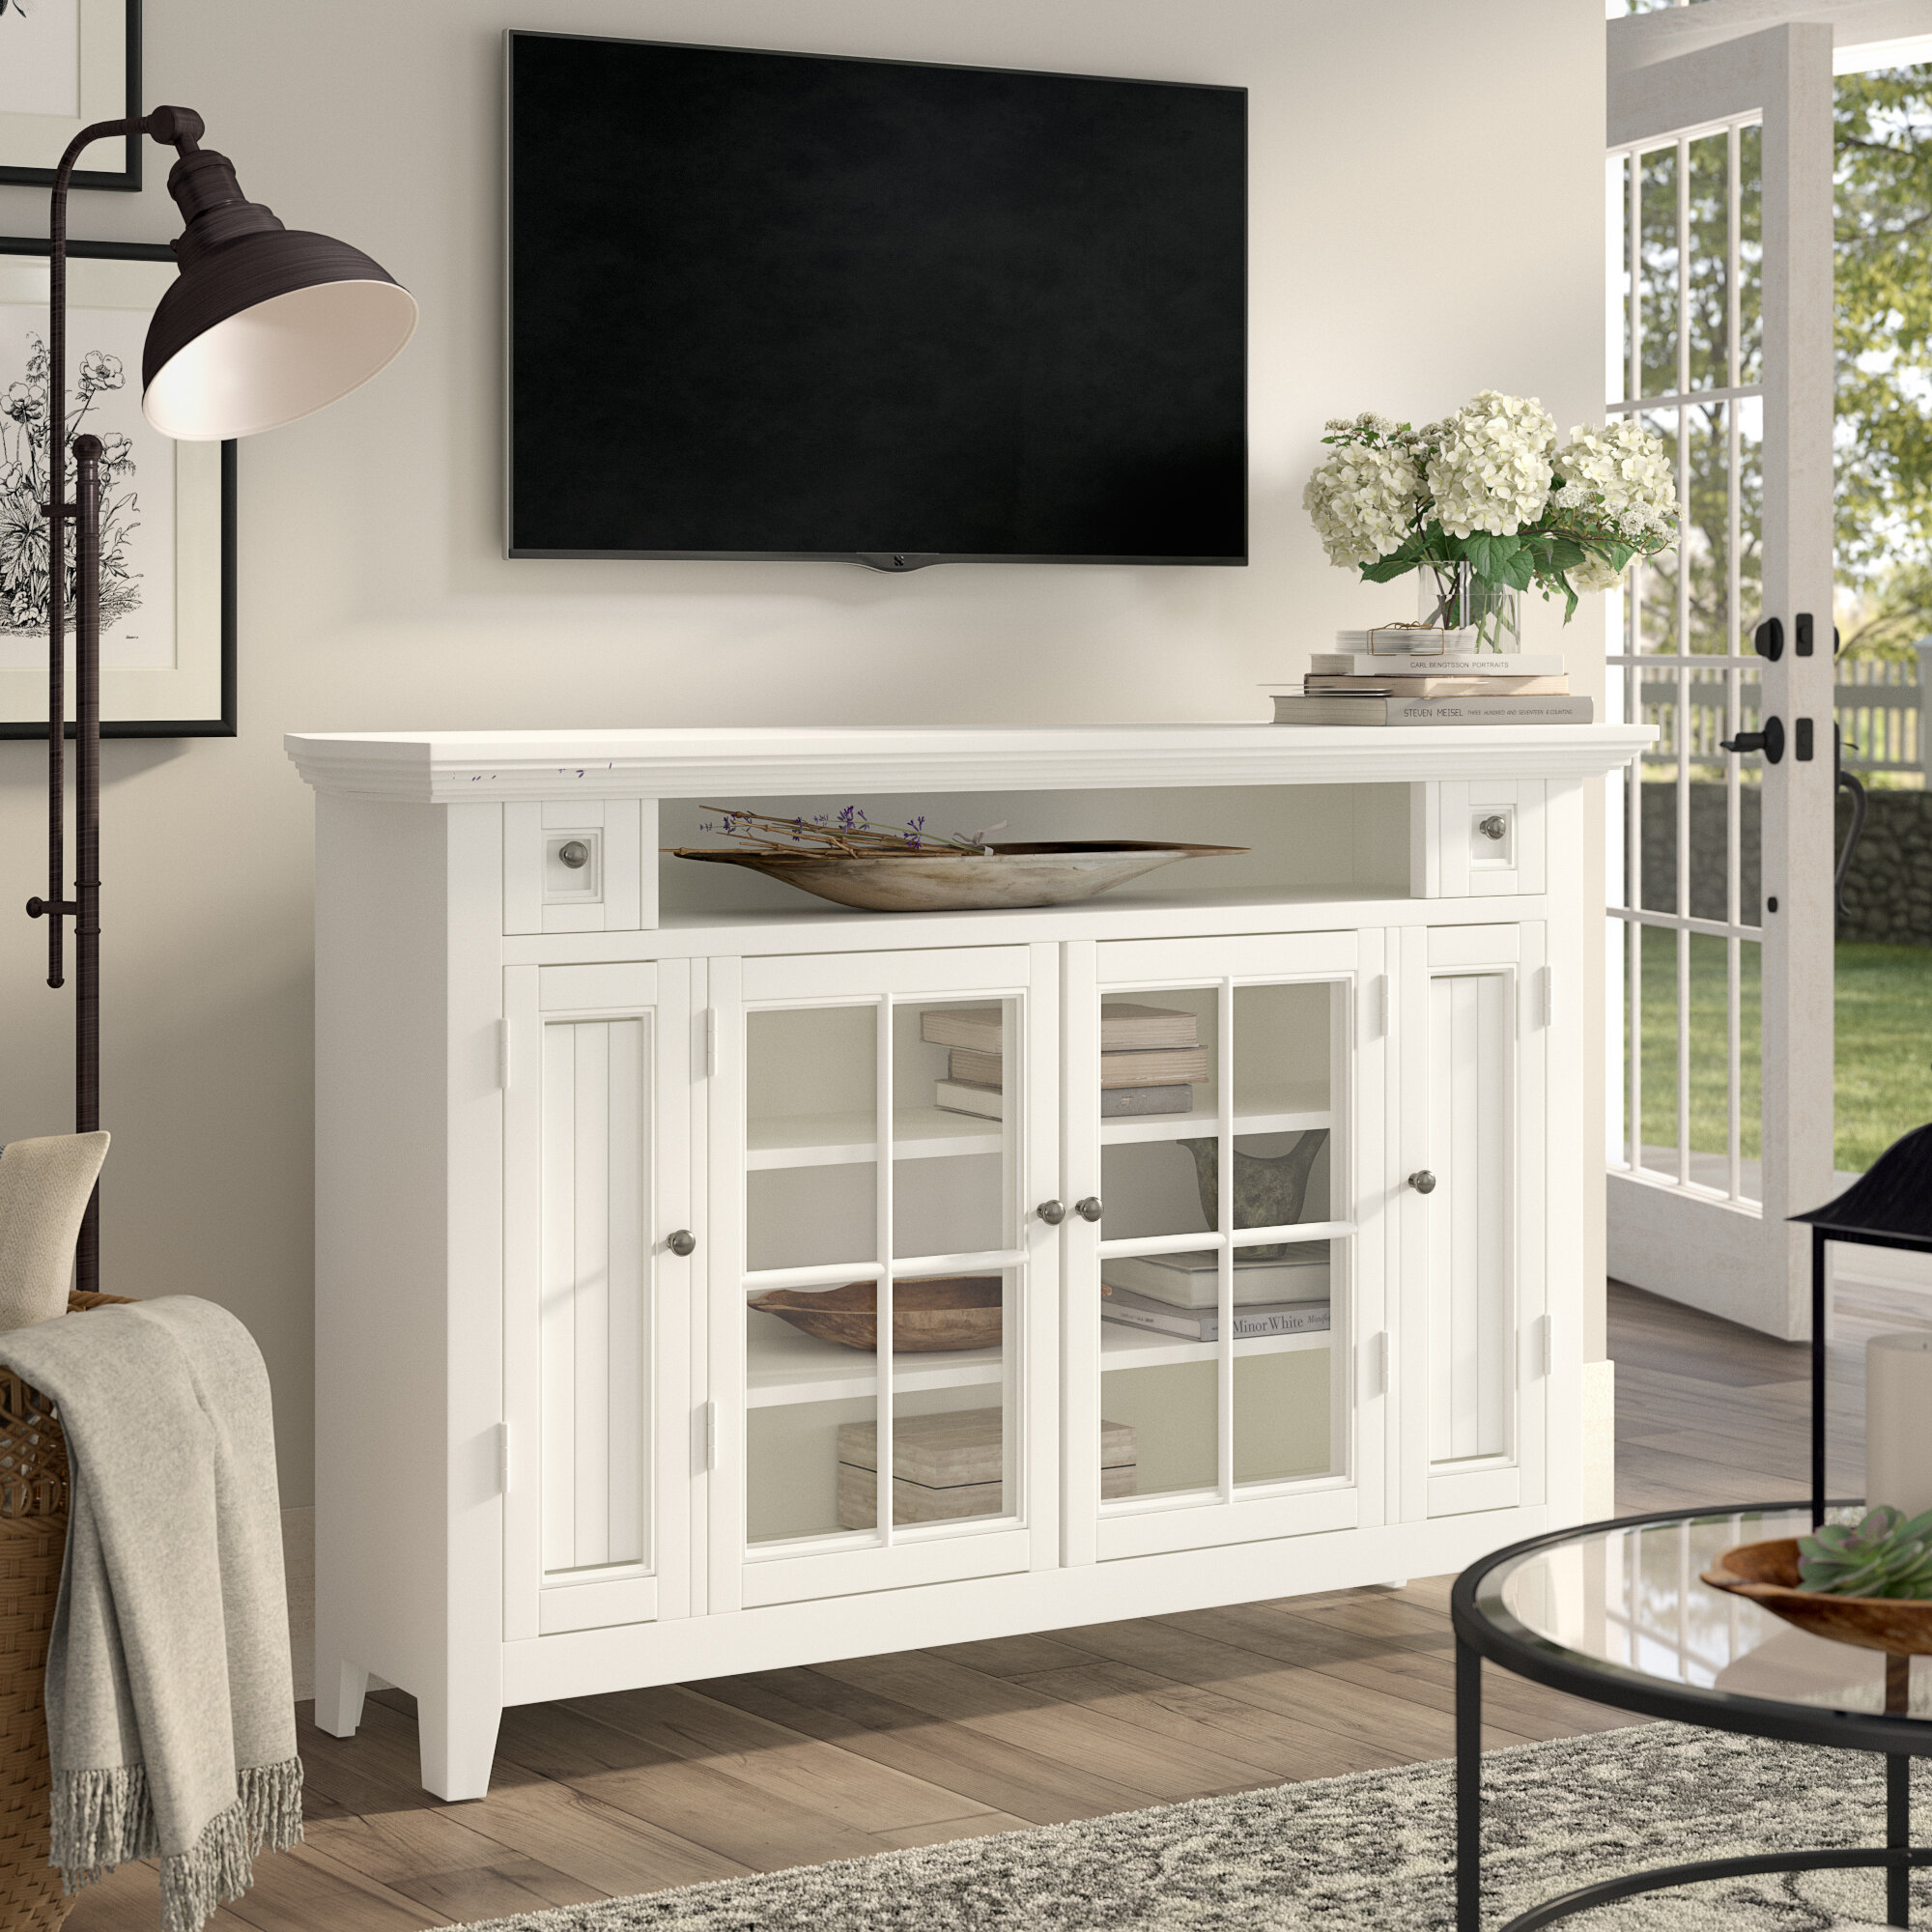 Birch Lane Heritage Benedetto Corner Tv Stand For Tvs Up To 65